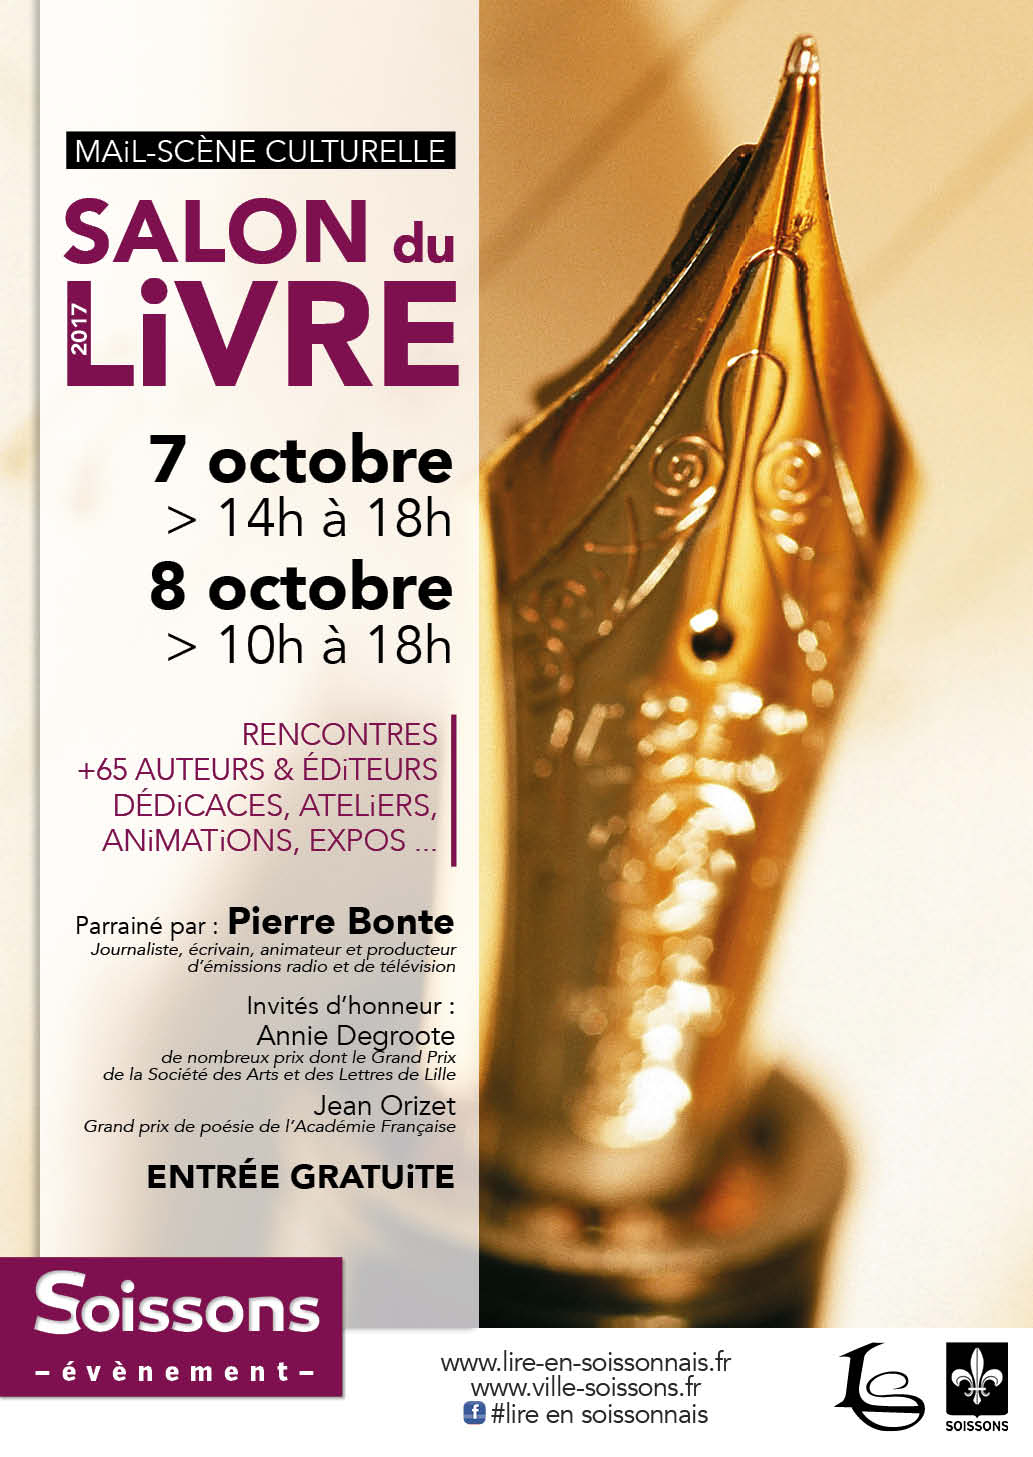 Salon du livre 2017 on y arrive lire en soissonnais for Salon du livre 2017